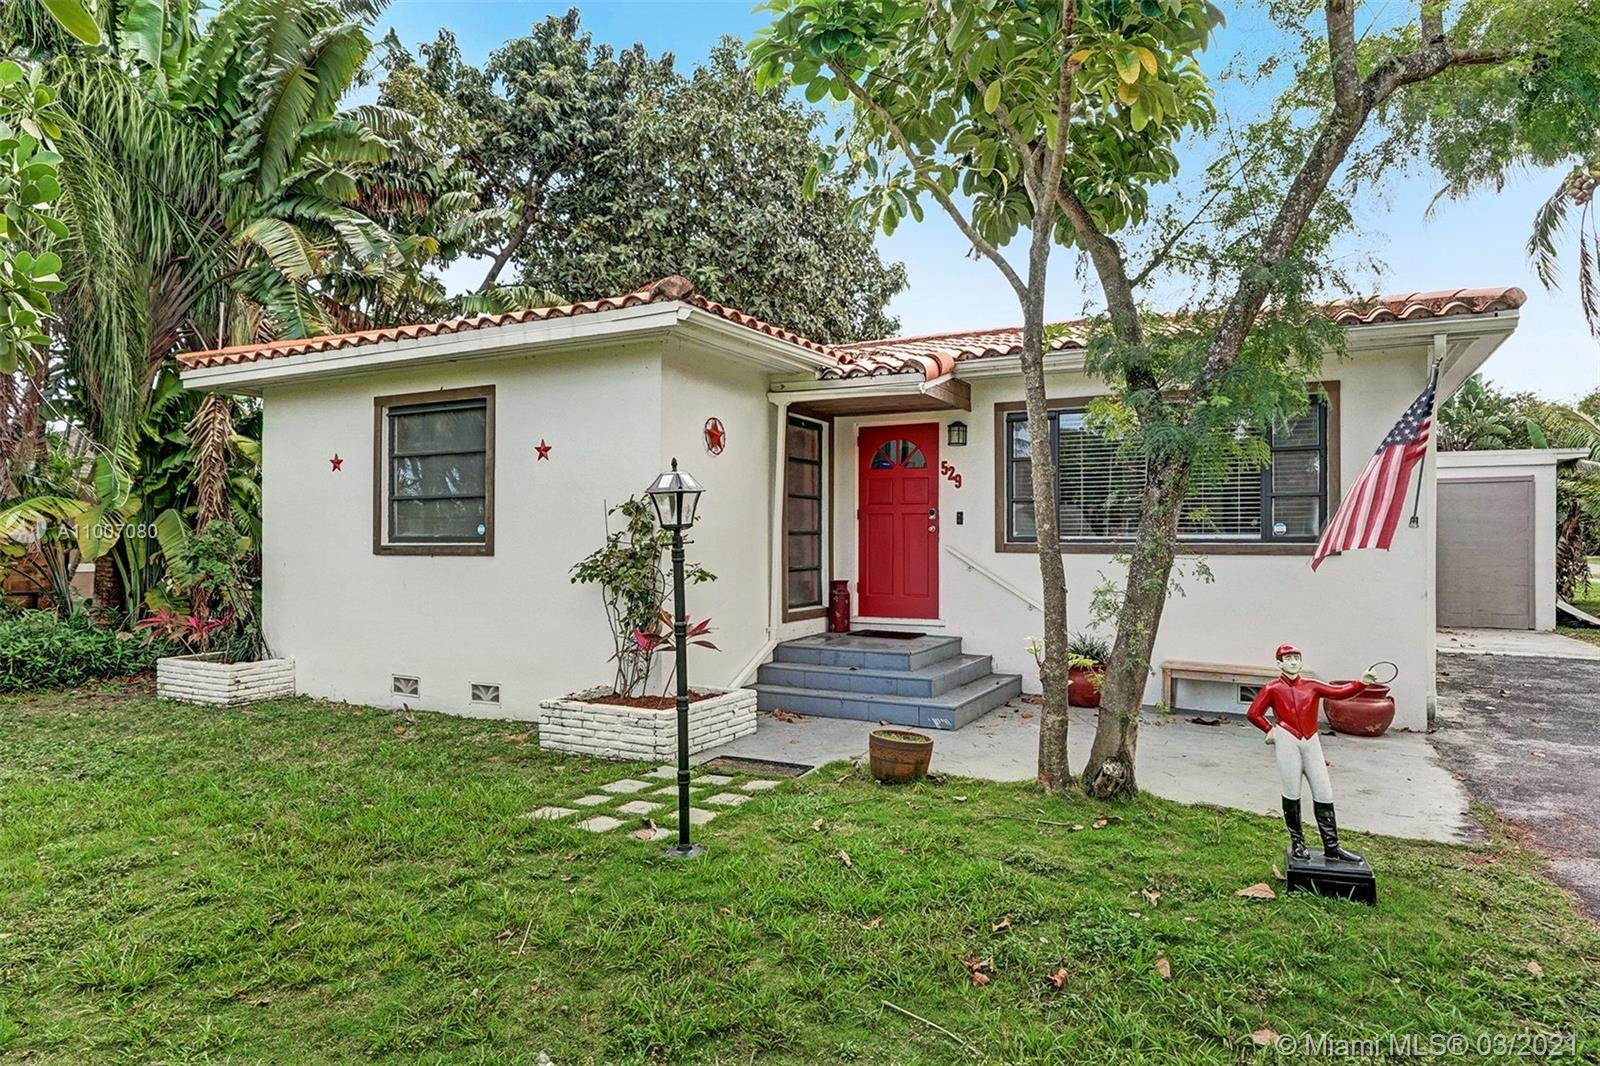 WOW!! Fantastic opportunity to live in Melaleuca Gardens in Dania Beach. This charming single family home sits on a huge corner lot with lots of space to park many cars or even a boat. Great layout that features a Florida room with lots of natural light. The backyard features a screened-in patio with a jacuzzi as well as a historic mosaic art deco piece on the wall. Attached to the patio is a private workshop and a full-size laundry room. Yard includes lemon trees and avocado trees. Location is great! Very close to the beach.